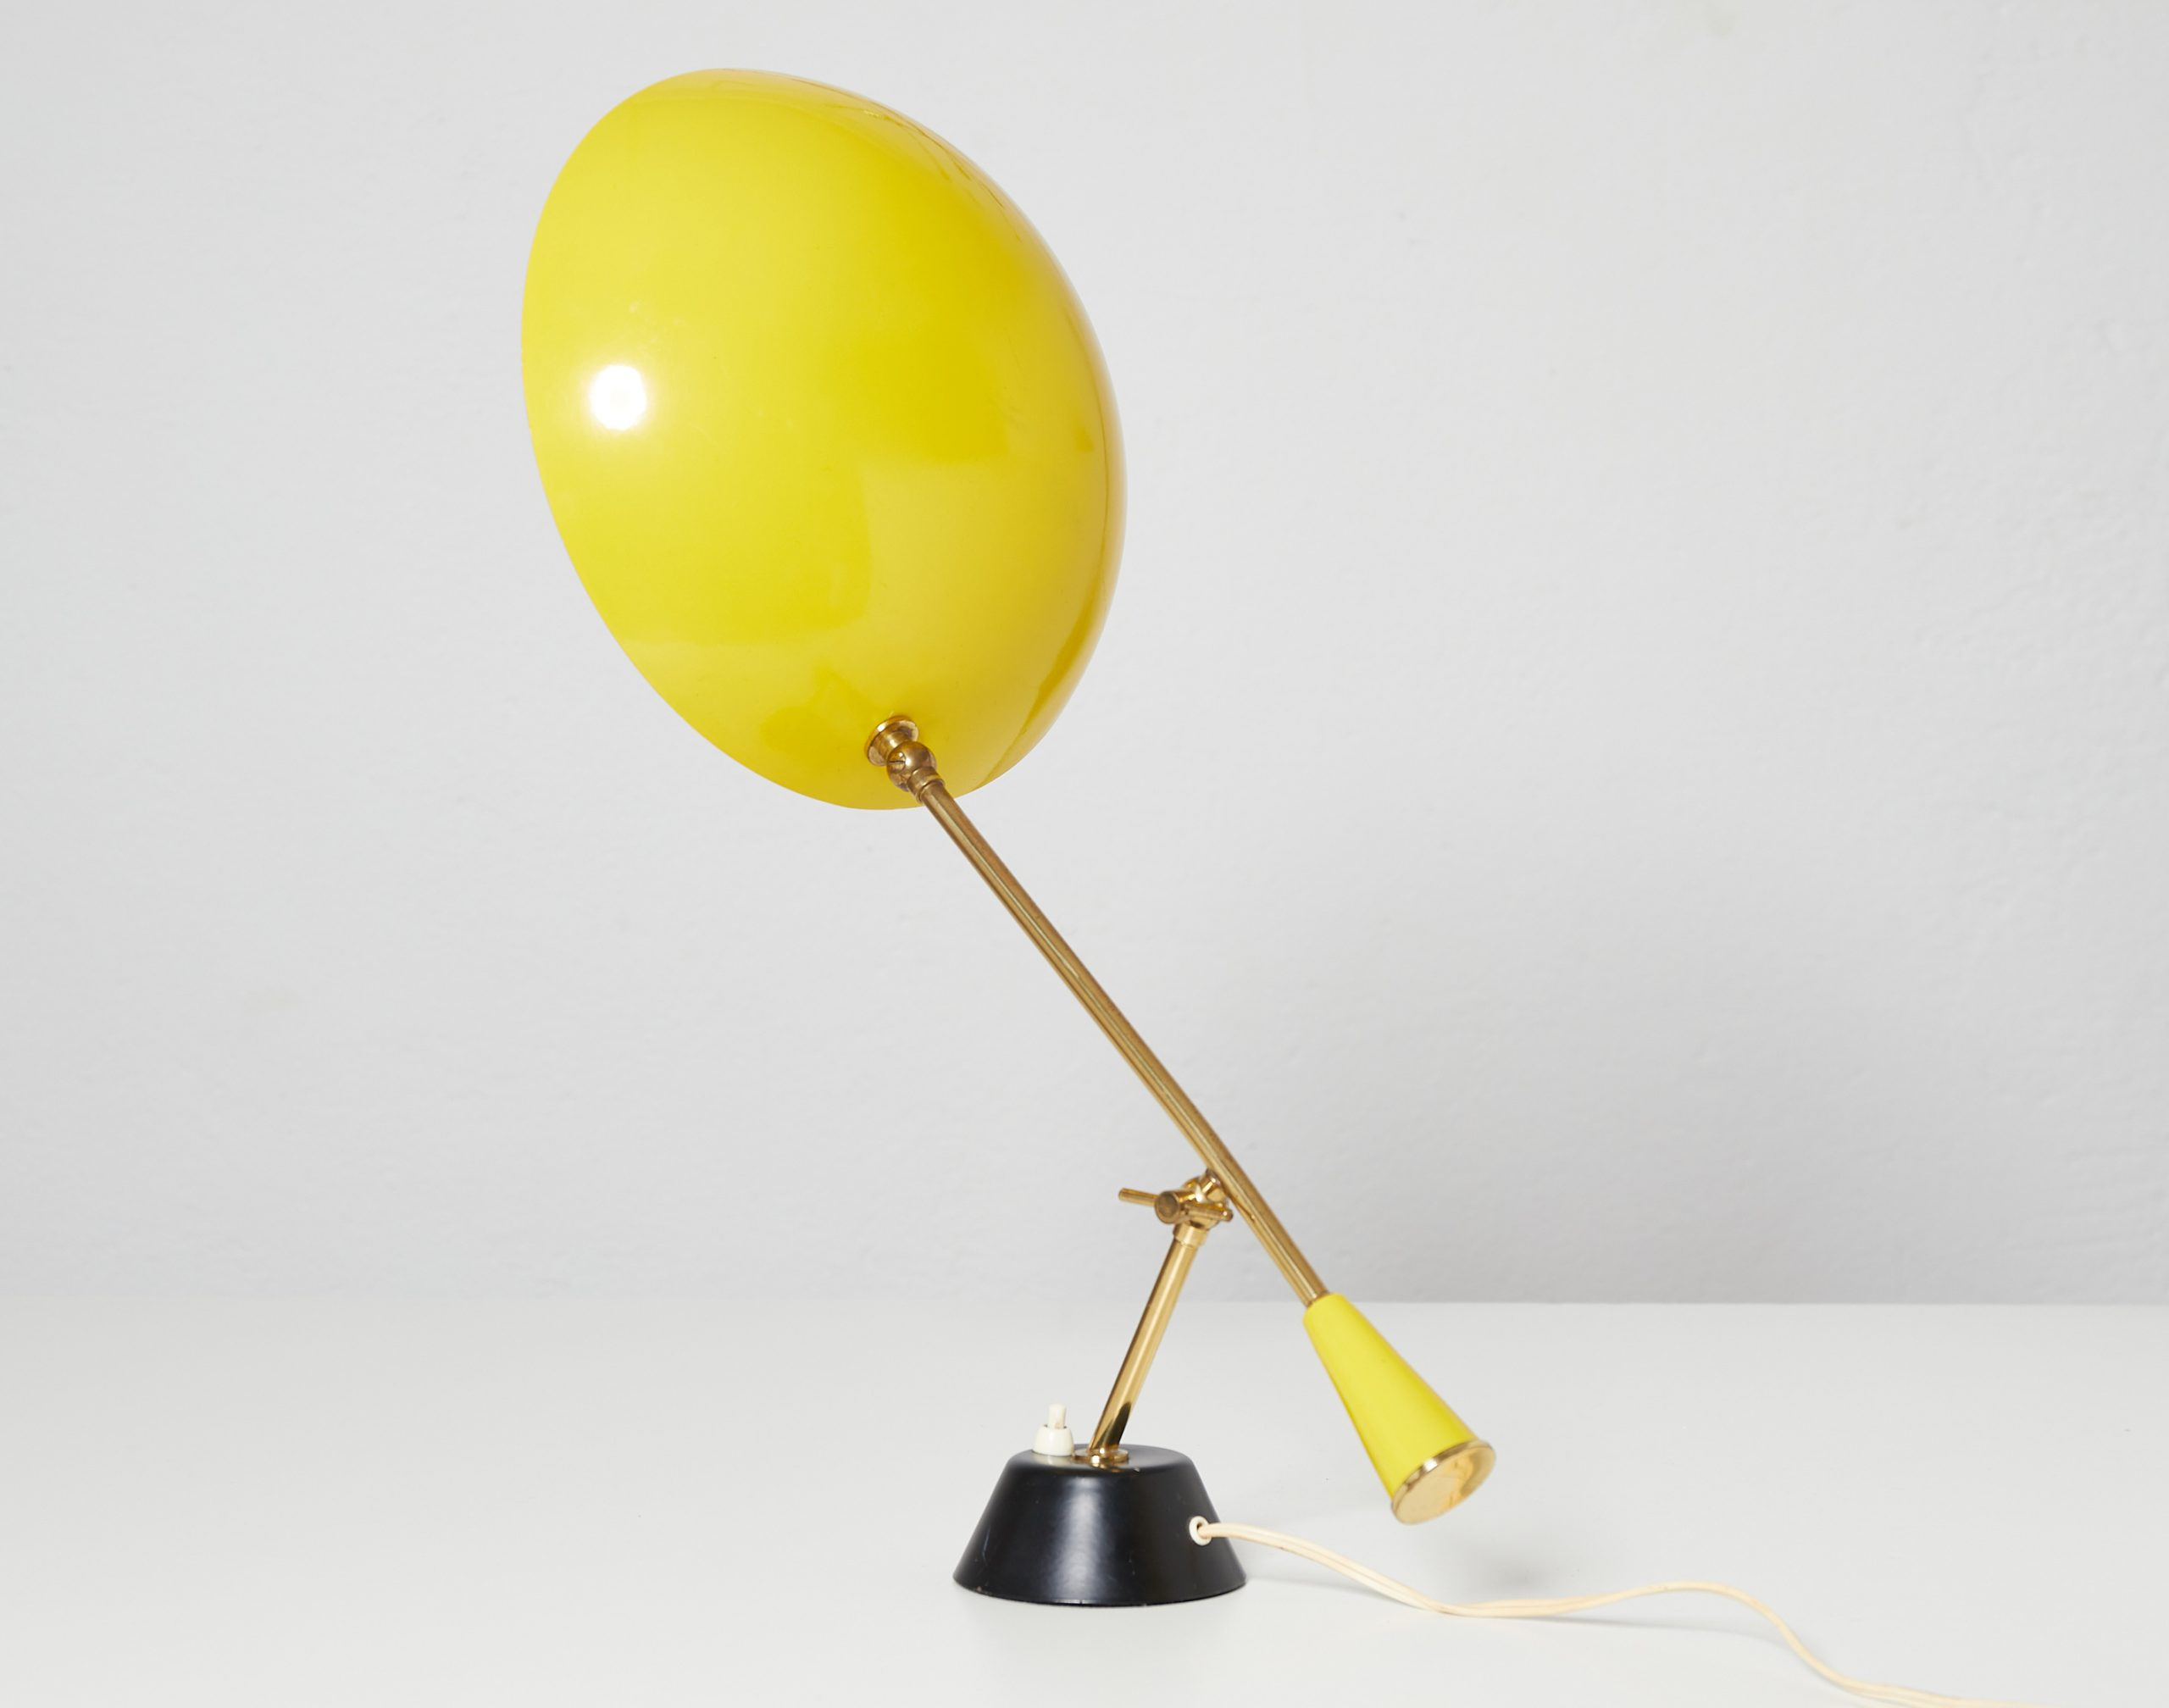 brass-and-yellow-lacquered-metal-table-lamp-with-counterweight-switzerland-1950-image-05